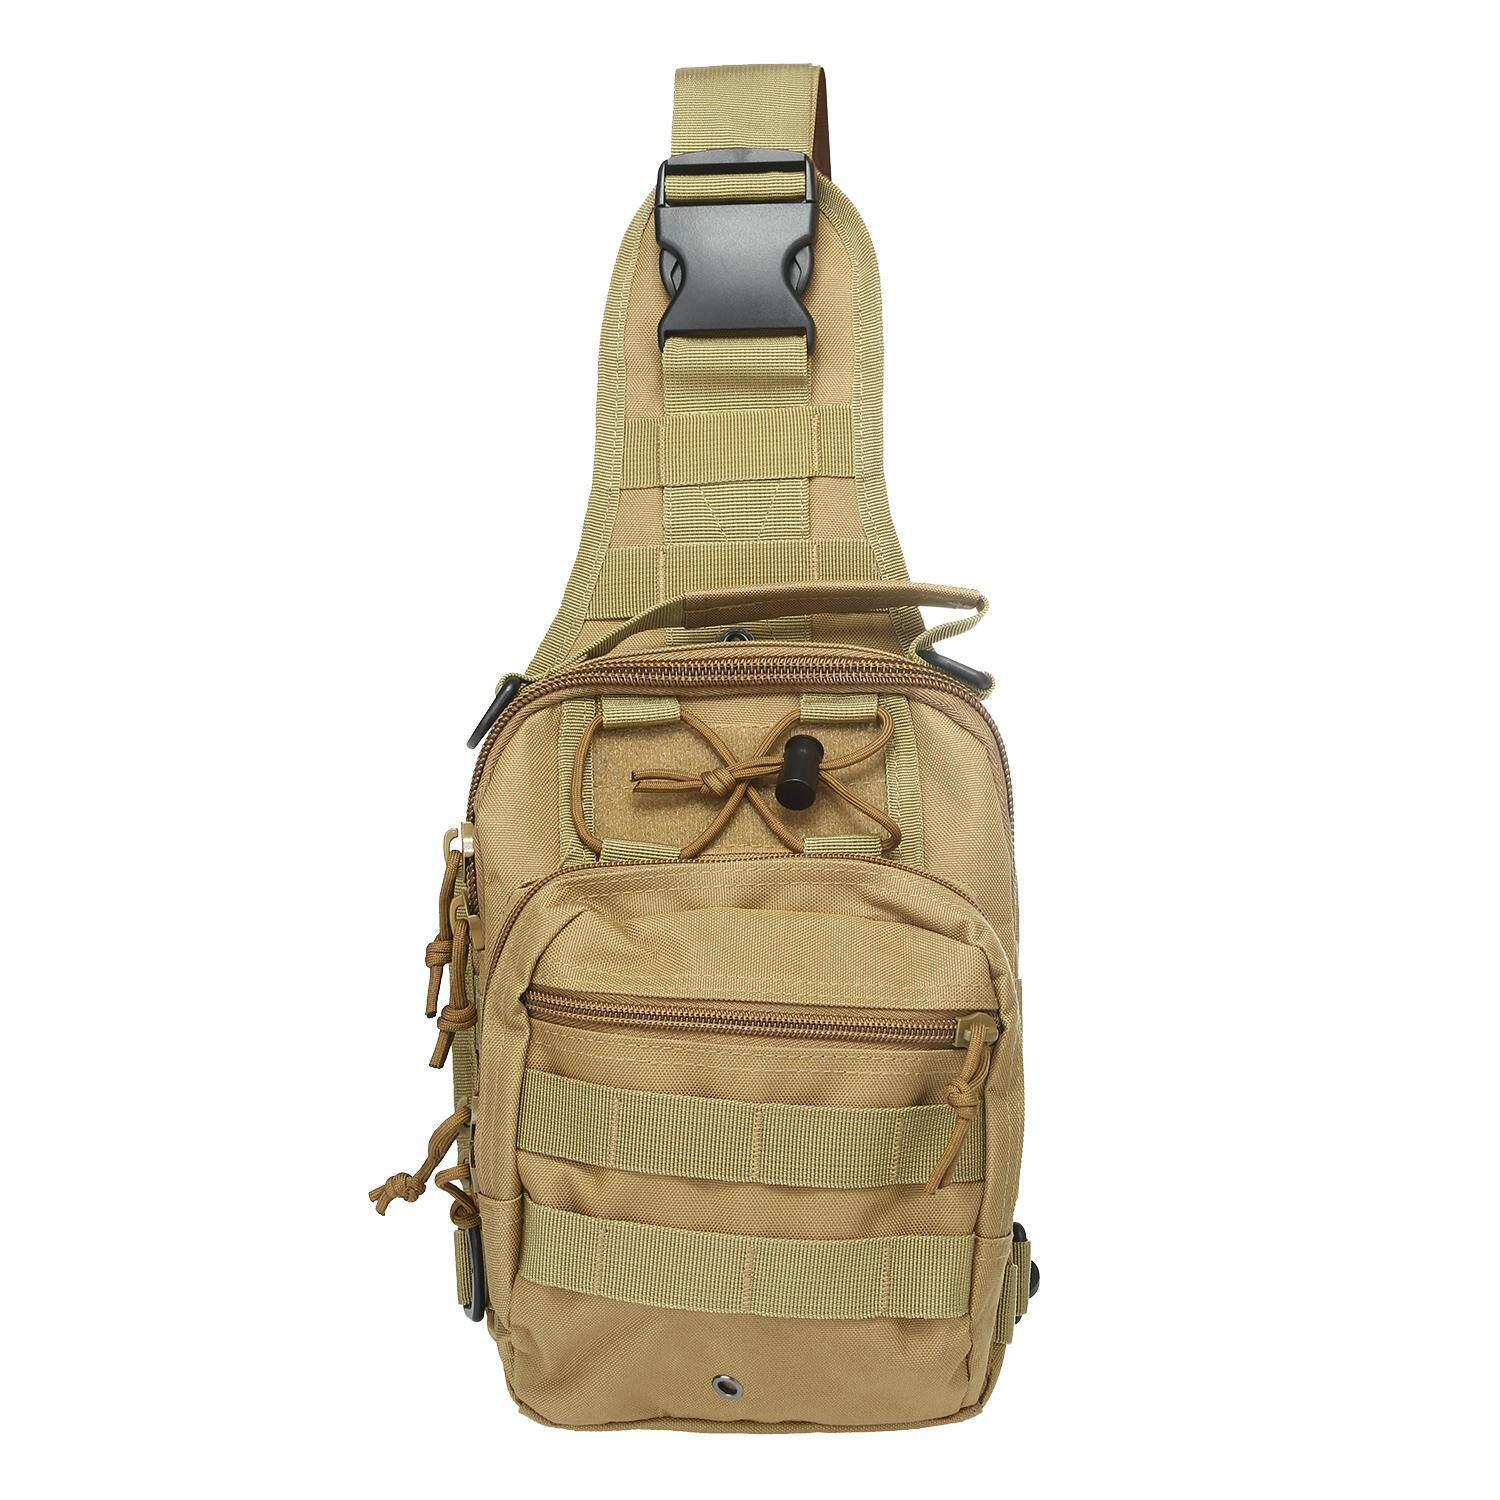 Kobwa Outdoor Tactical Backpack, Canvas Shoulder Sling Backpack Chest Deployment Bags For Camping,hiking,trekking,rover Sling Pack Chest Pack- Khaki - Intl By Kobwa Direct.